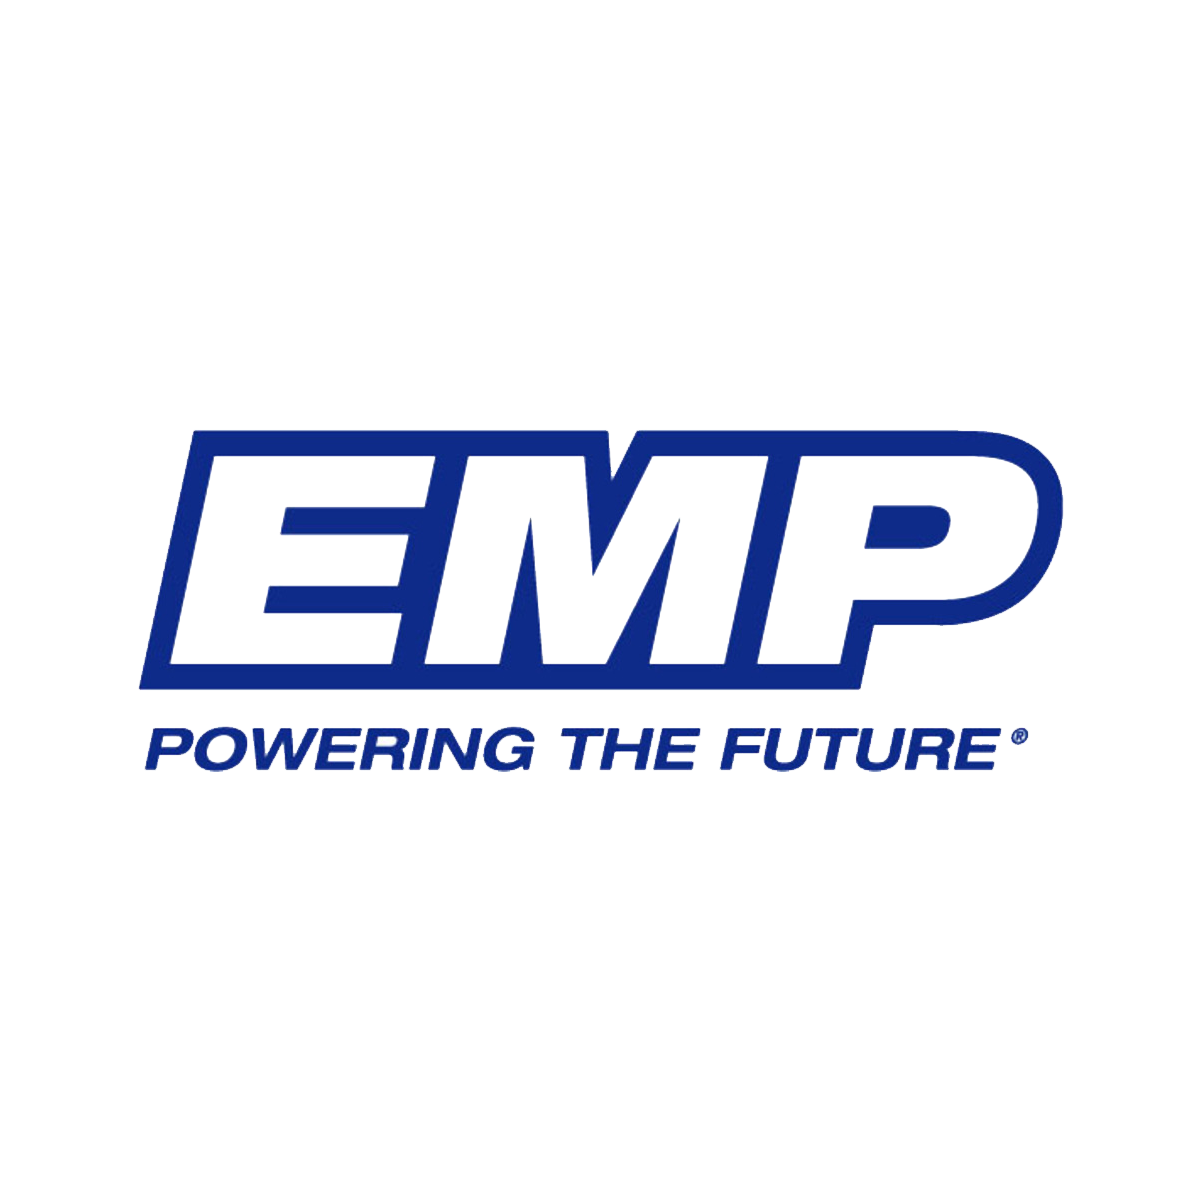 engineered machine products (emp) logo